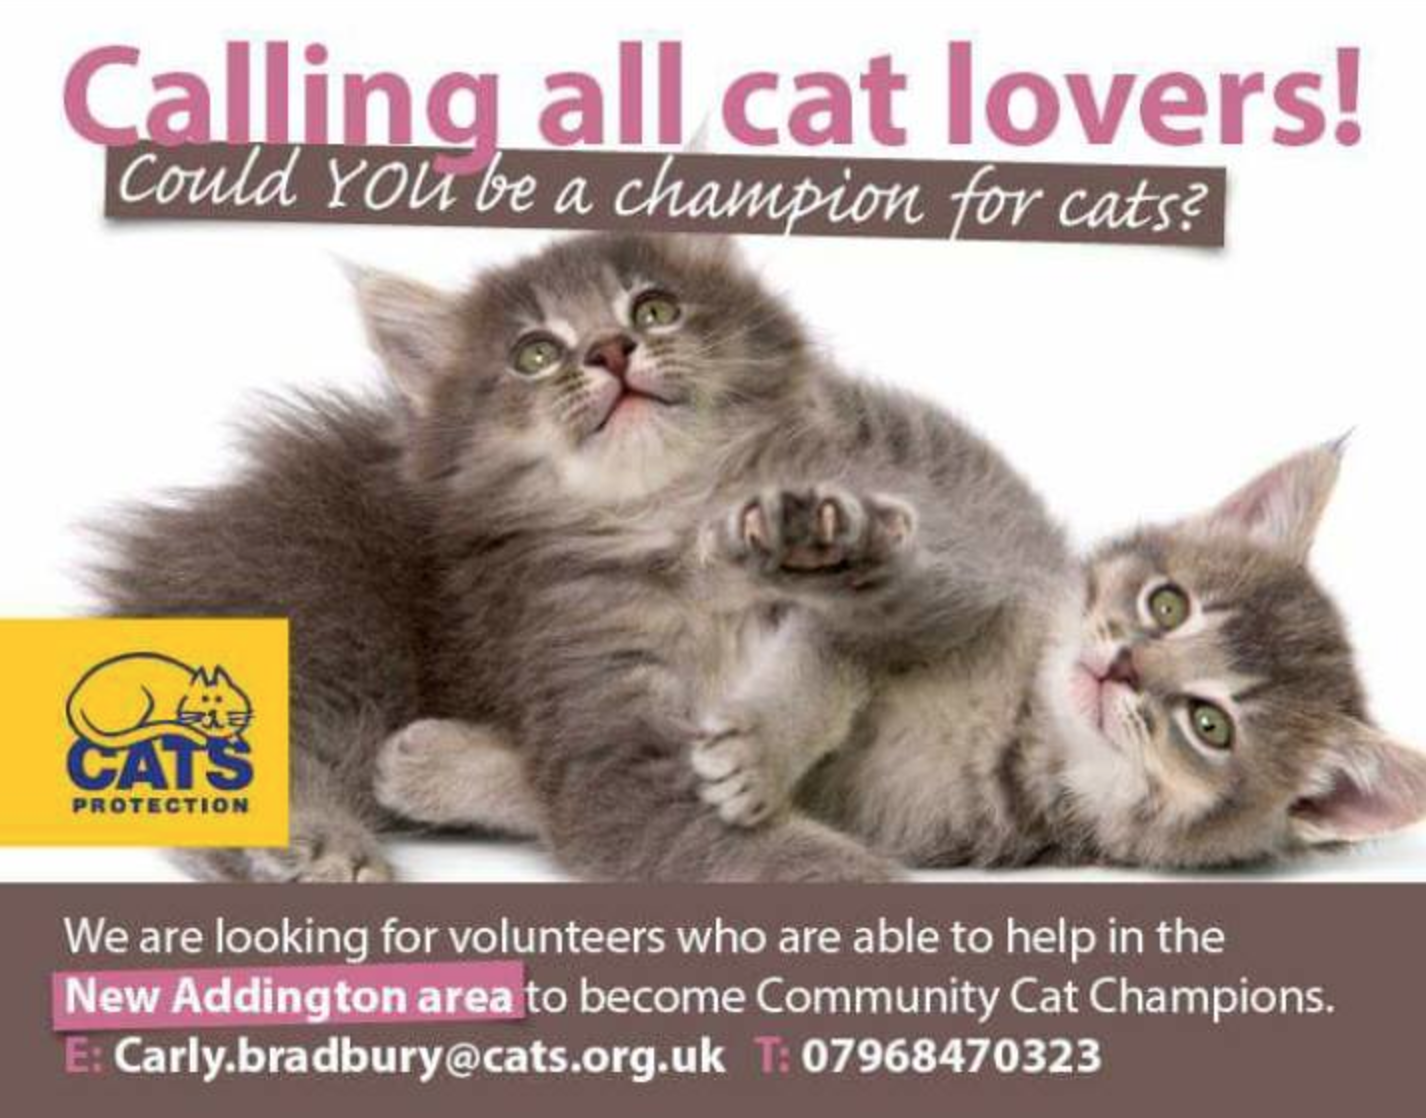 Cats Protection Need Volunteers To Door Knock Now To Promote Their